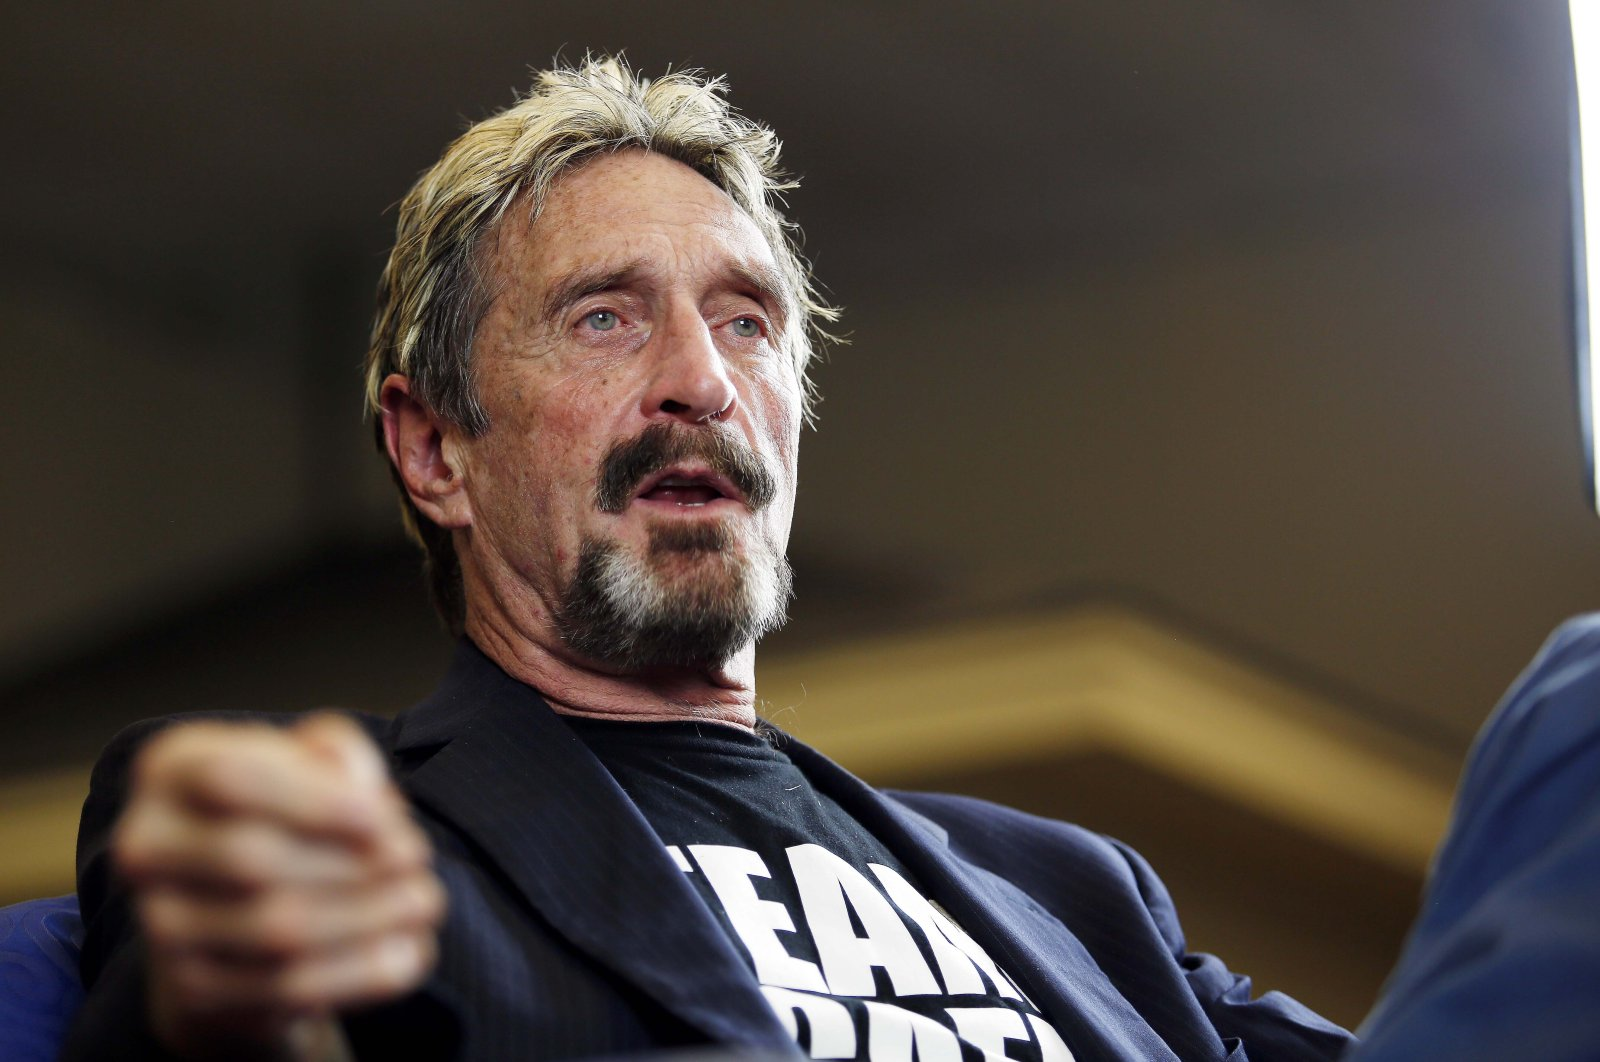 Software entrepreneur John McAfee announces his candidacy for the presidency, in Opelika, Alabama, U.S., Sept. 9, 2015. (AP Photo)